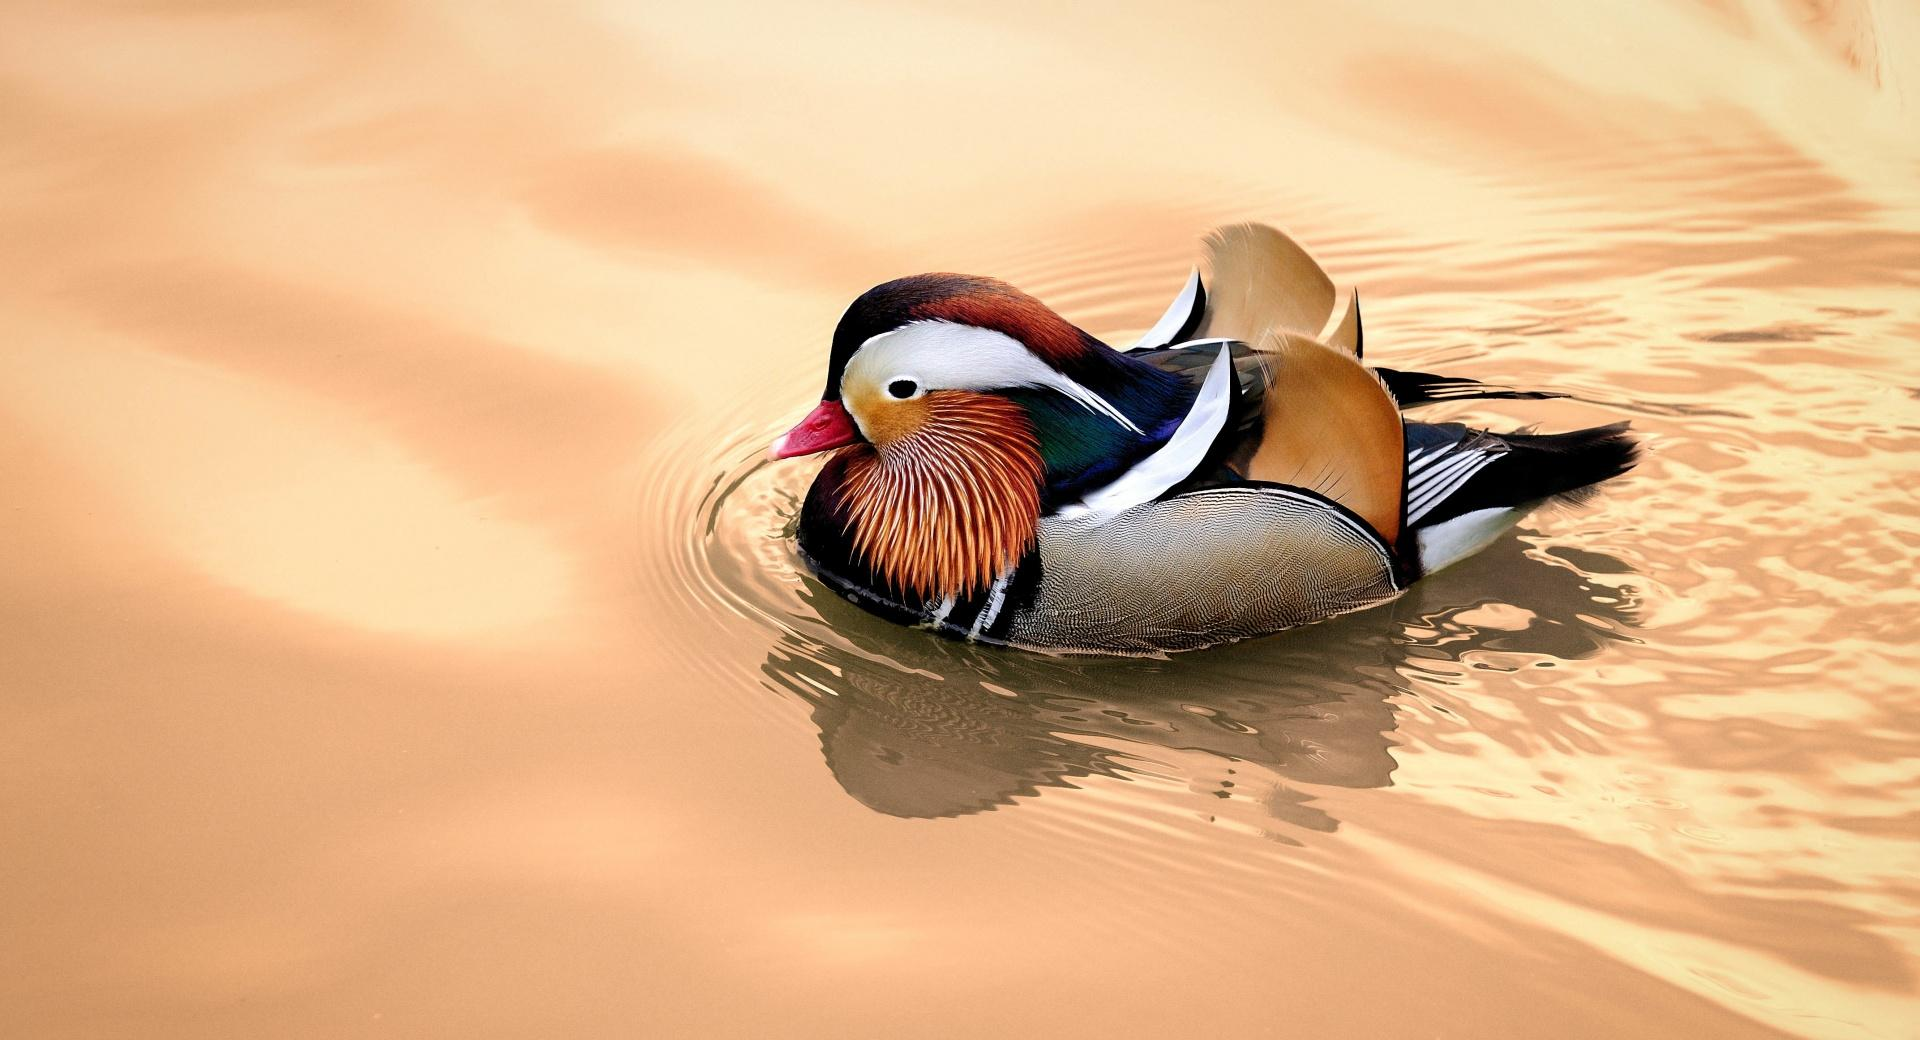 Mandarin Duck Male at 750 x 1334 iPhone 6 size wallpapers HD quality